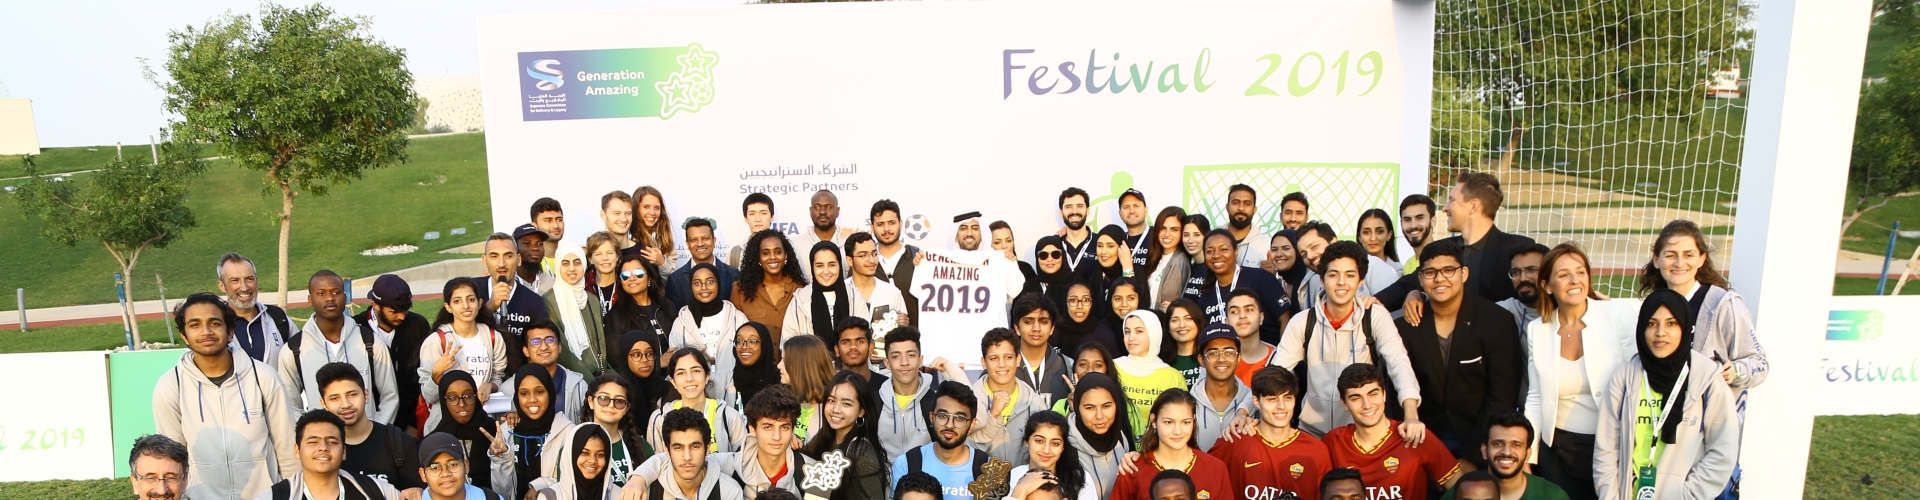 GA Youth Advocates at GA Festival 2019